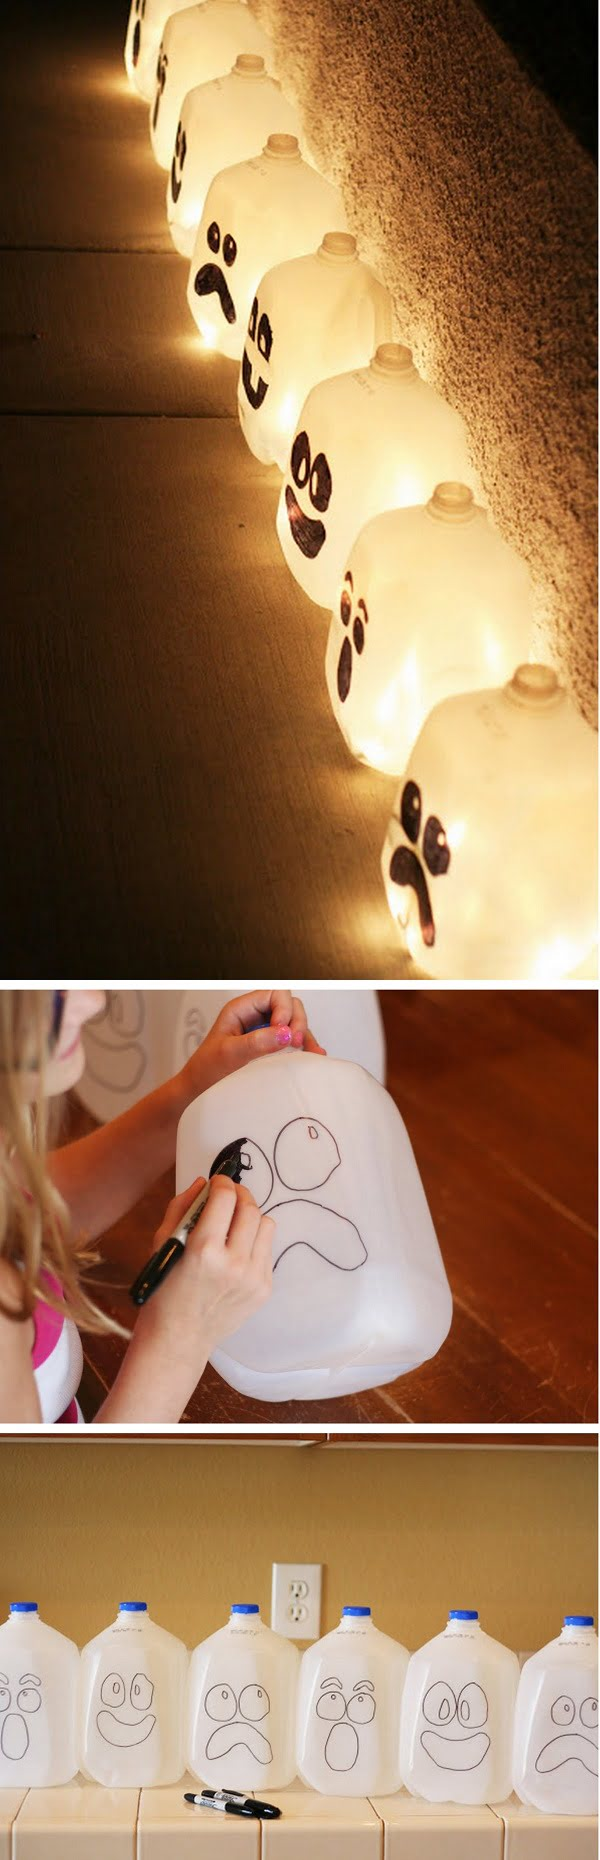 Check out the tutorial on how to make DIY spooky spirit jugs for Halloween home decoration